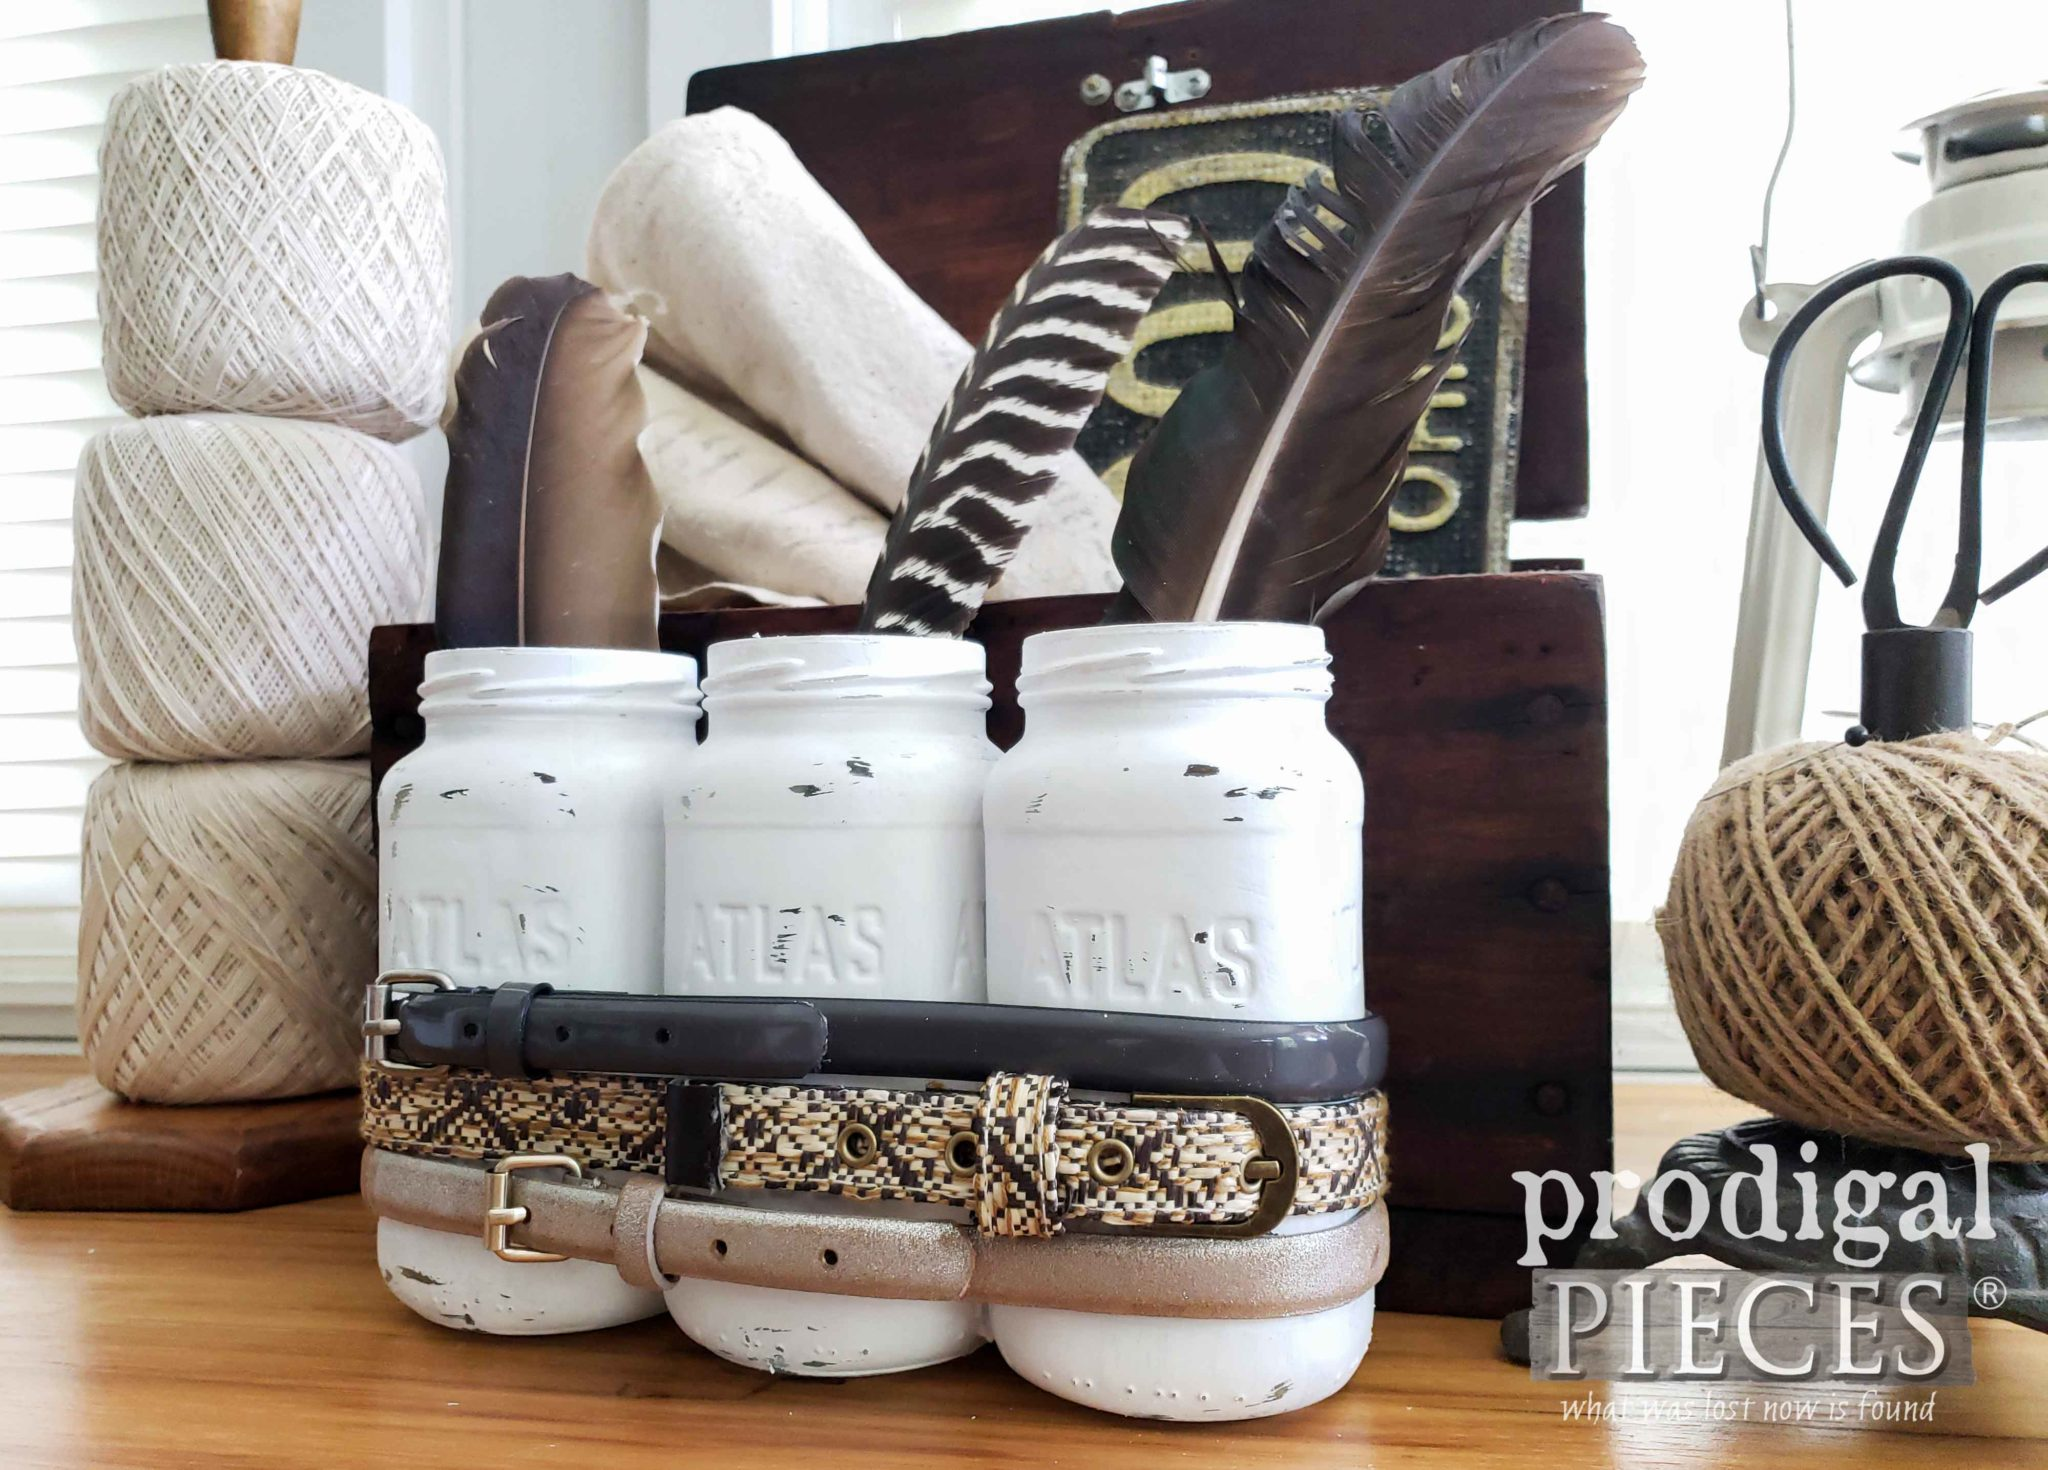 Rustic Chic DIY Decor by Larissa of Prodigal Pieces | prodigalpieces.com #prodigalpieces #farmhouse #diy #home #homedecor